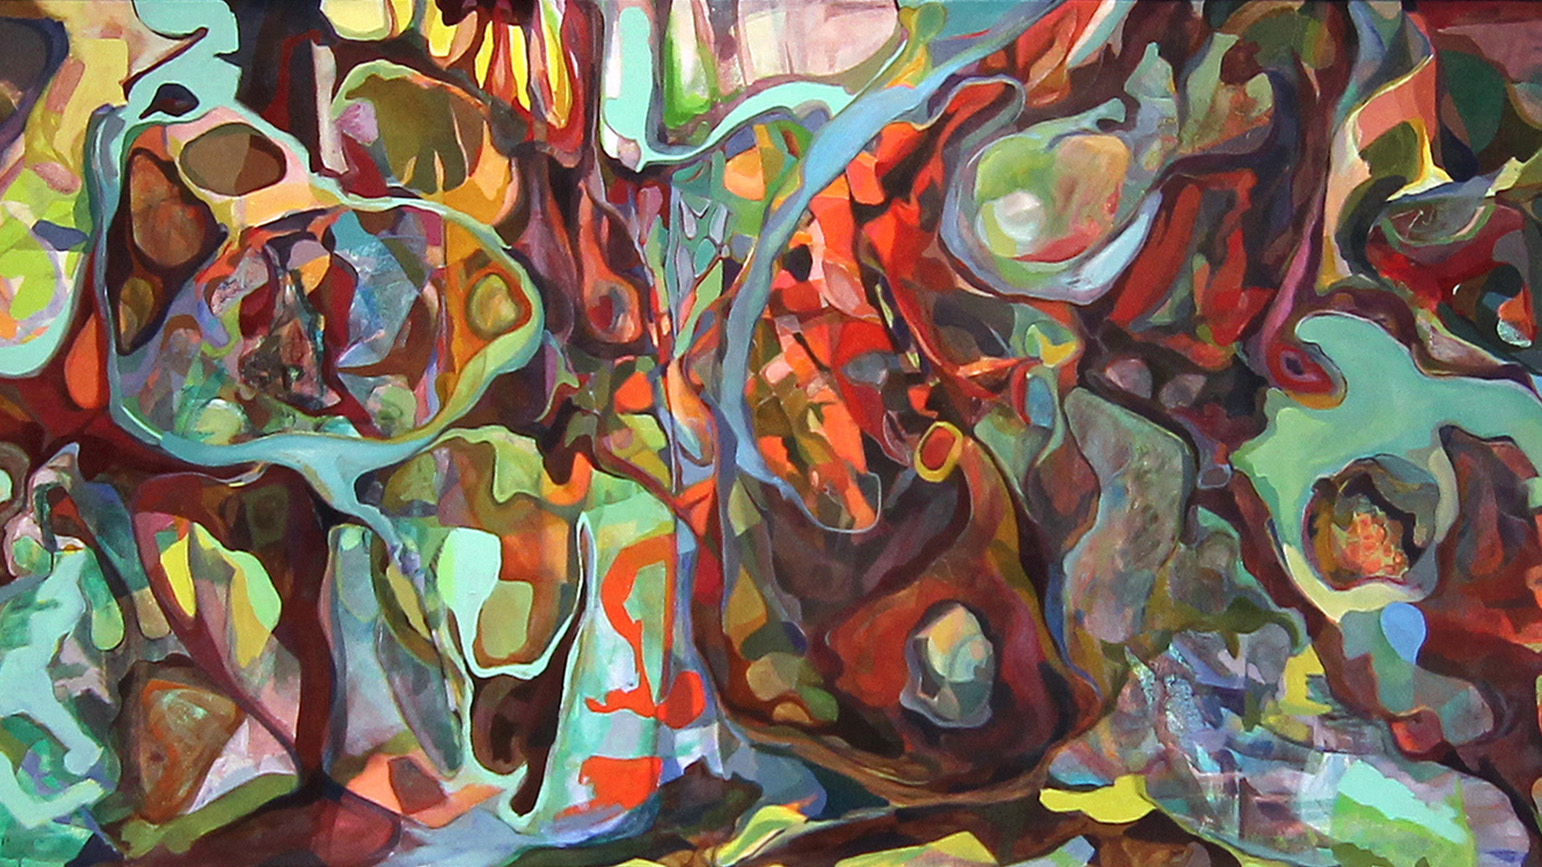 Abstract painting with organic forms in many colors